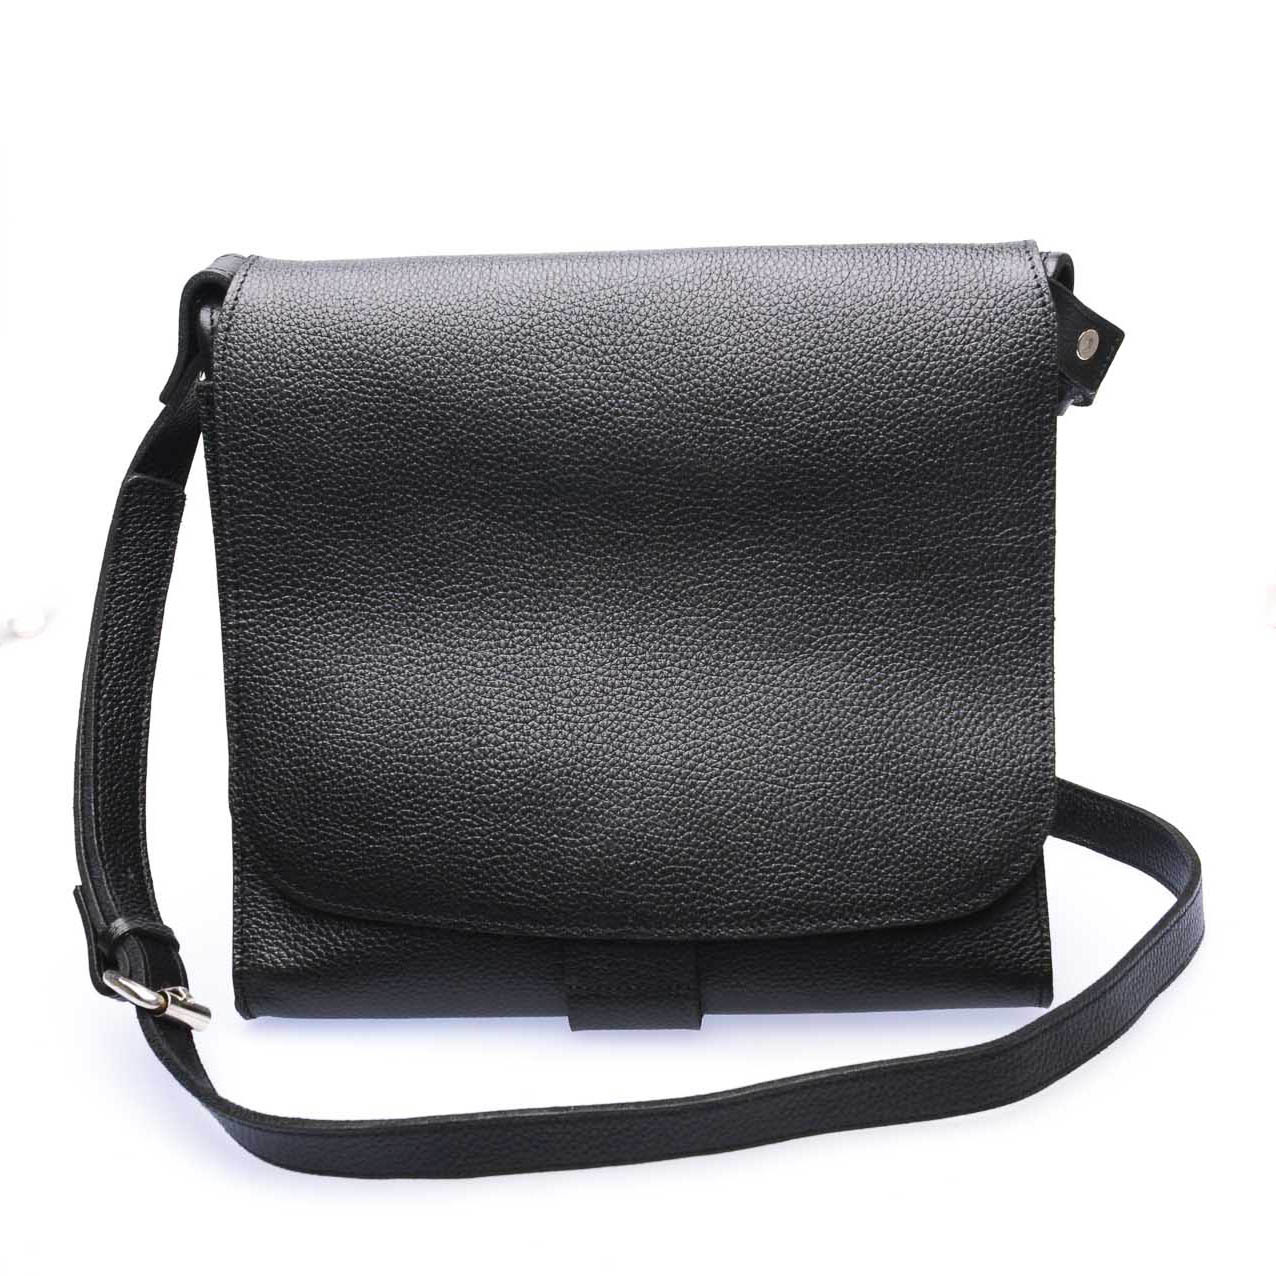 Our Tribe 105 Unisex Leather & Canvas Messenger Bag